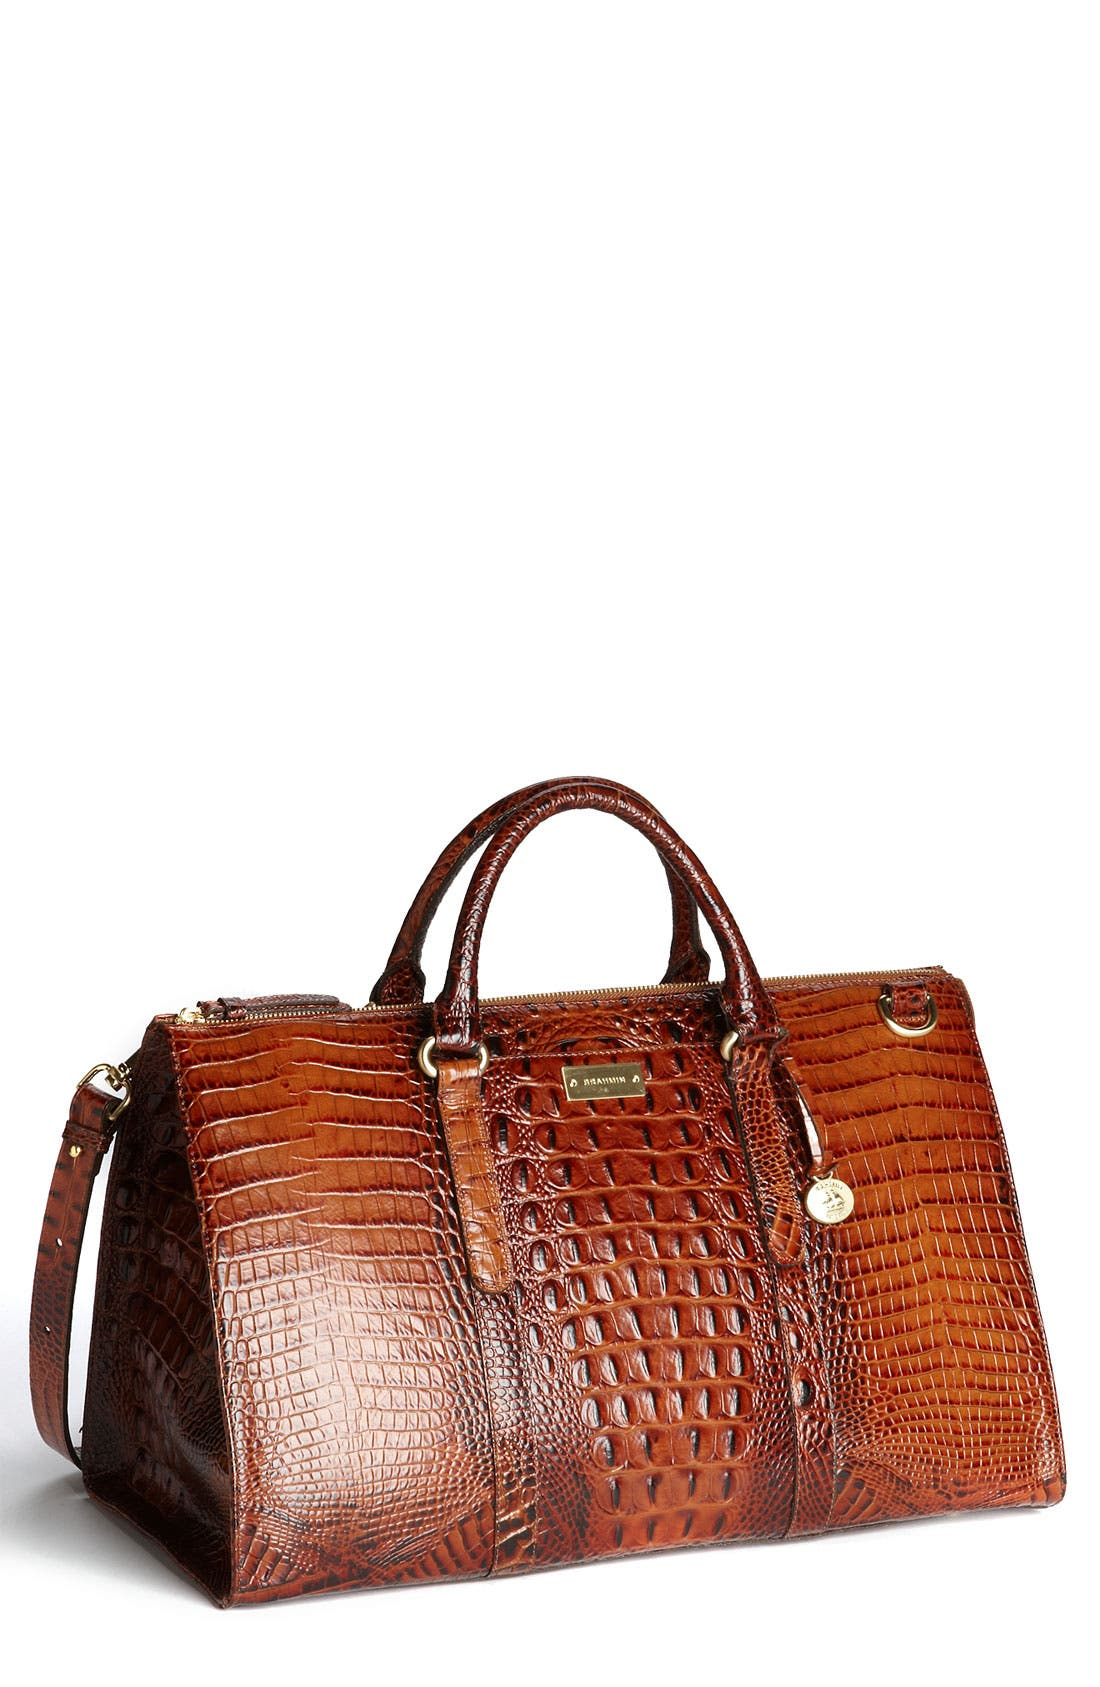 Main Image - Brahmin 'Anywhere' Weekend Bag